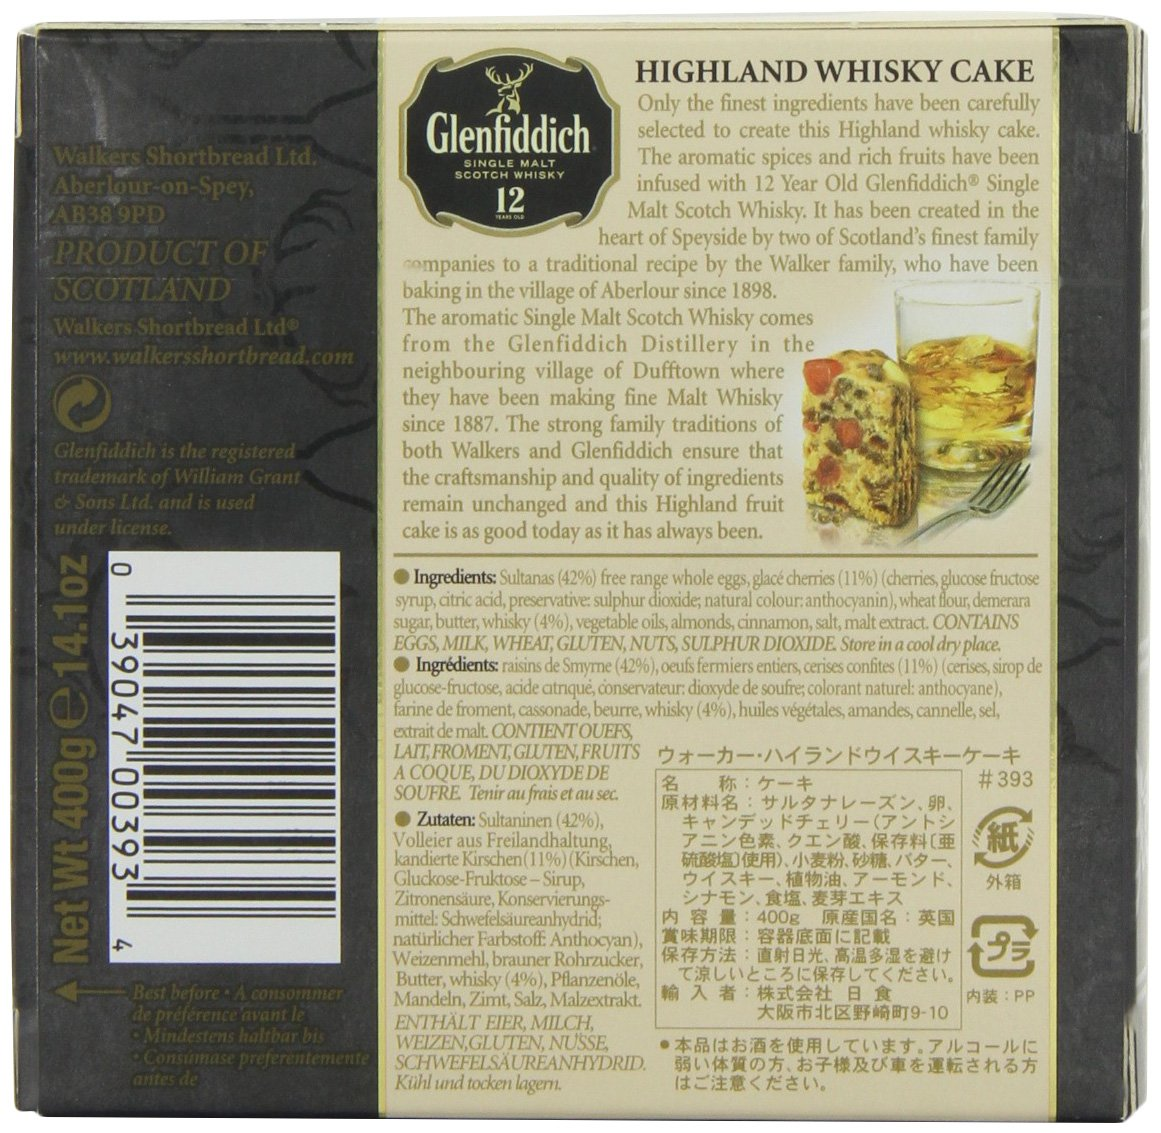 Walkers Shortbread Glenfiddich Highland Whisky Cake, 14.1 Ounce Box Traditional Scottish Fruit Cake with Glenfiddich Malt Whisky, Cherries, Sultanas by Walkers Shortbread (Image #4)